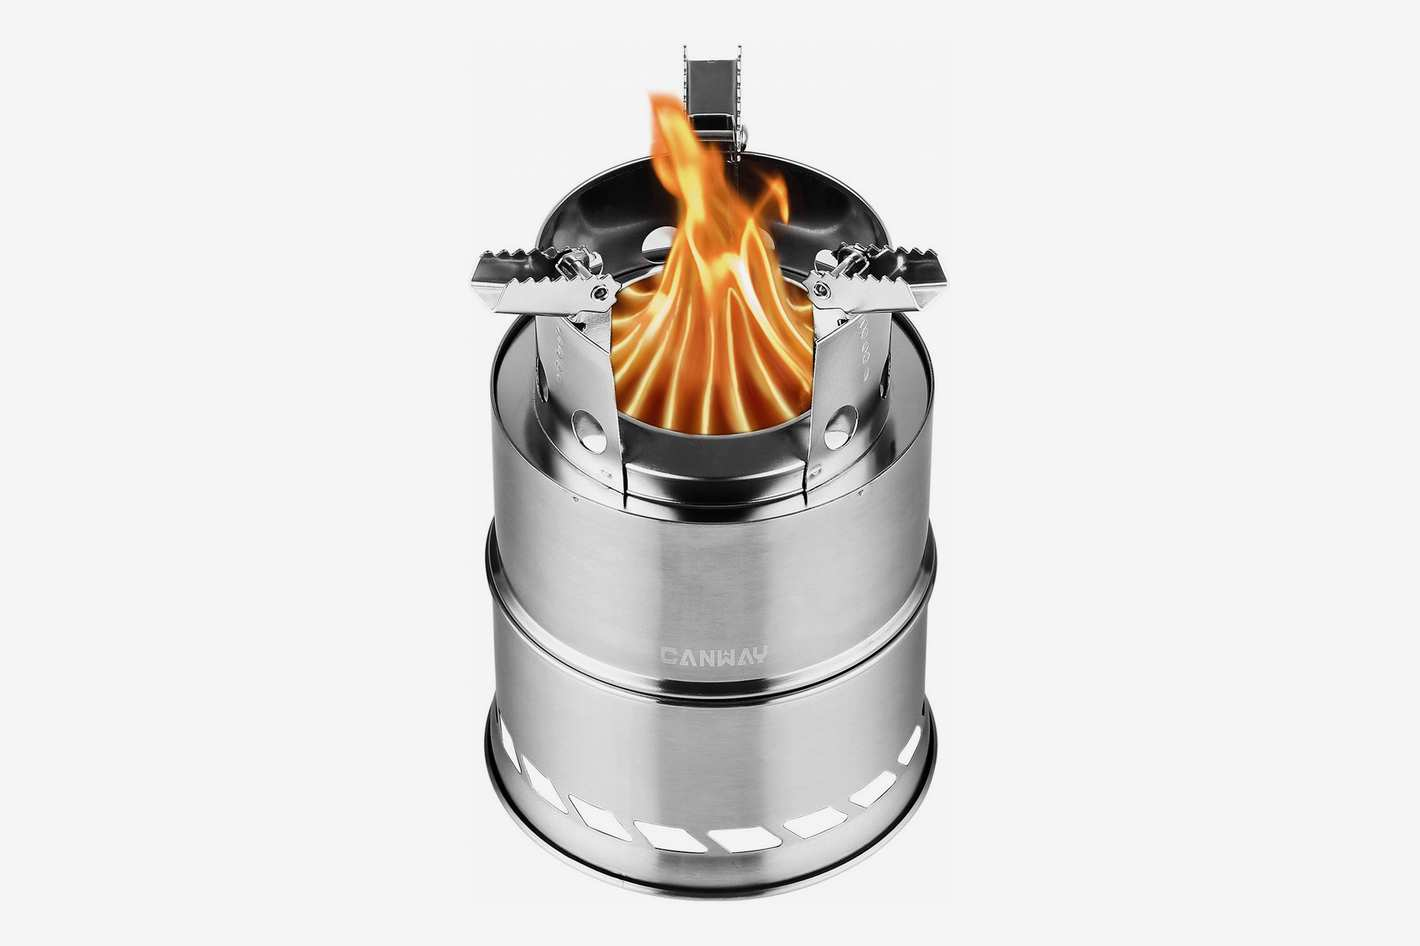 Canway Wood Burning Camping Stove